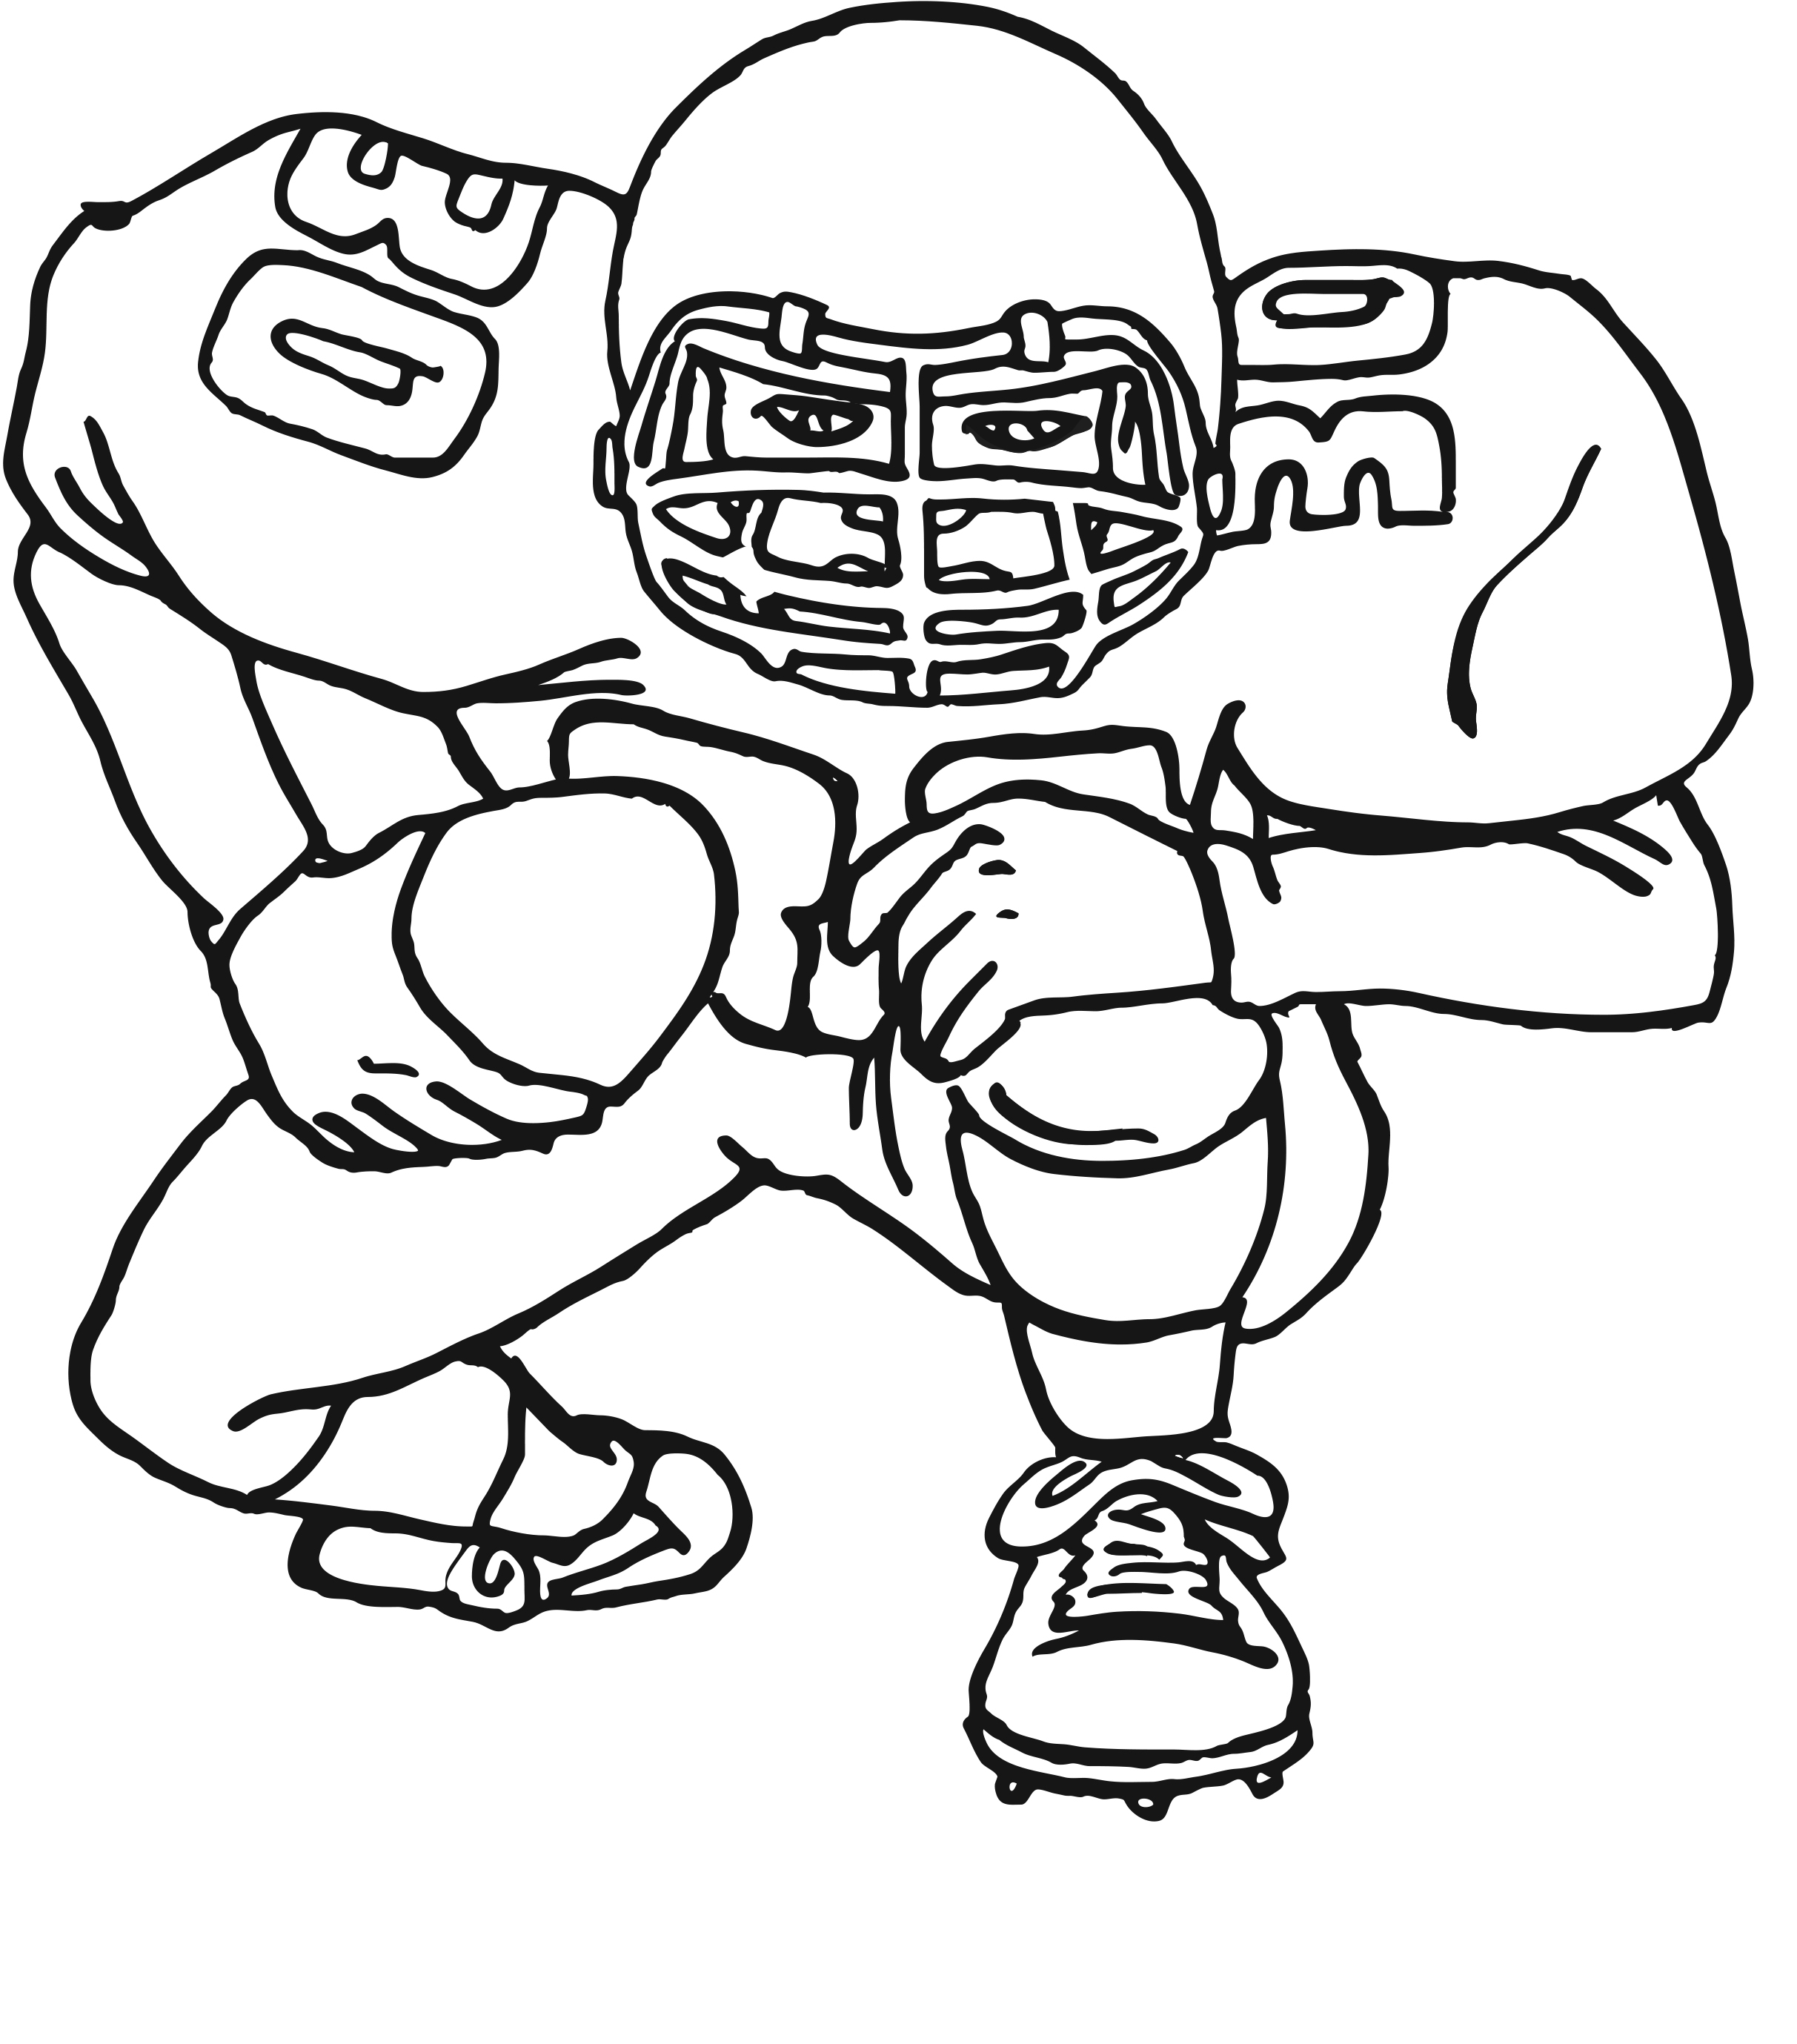 football colouring pages football player coloring page woo jr kids activities football colouring pages